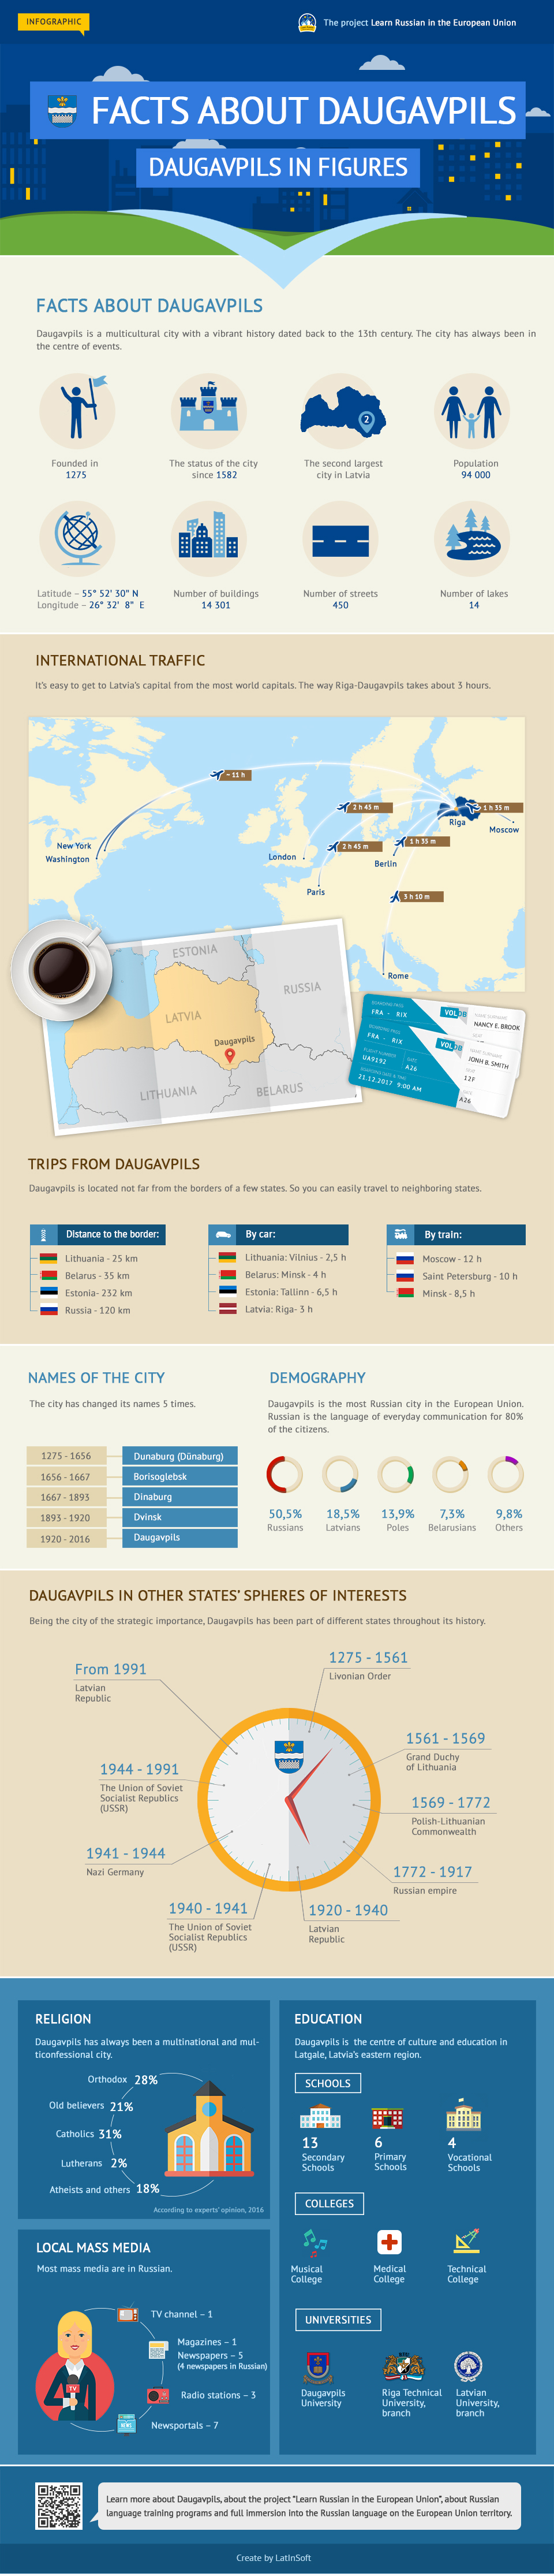 Infographic: Facts about Daugavpils